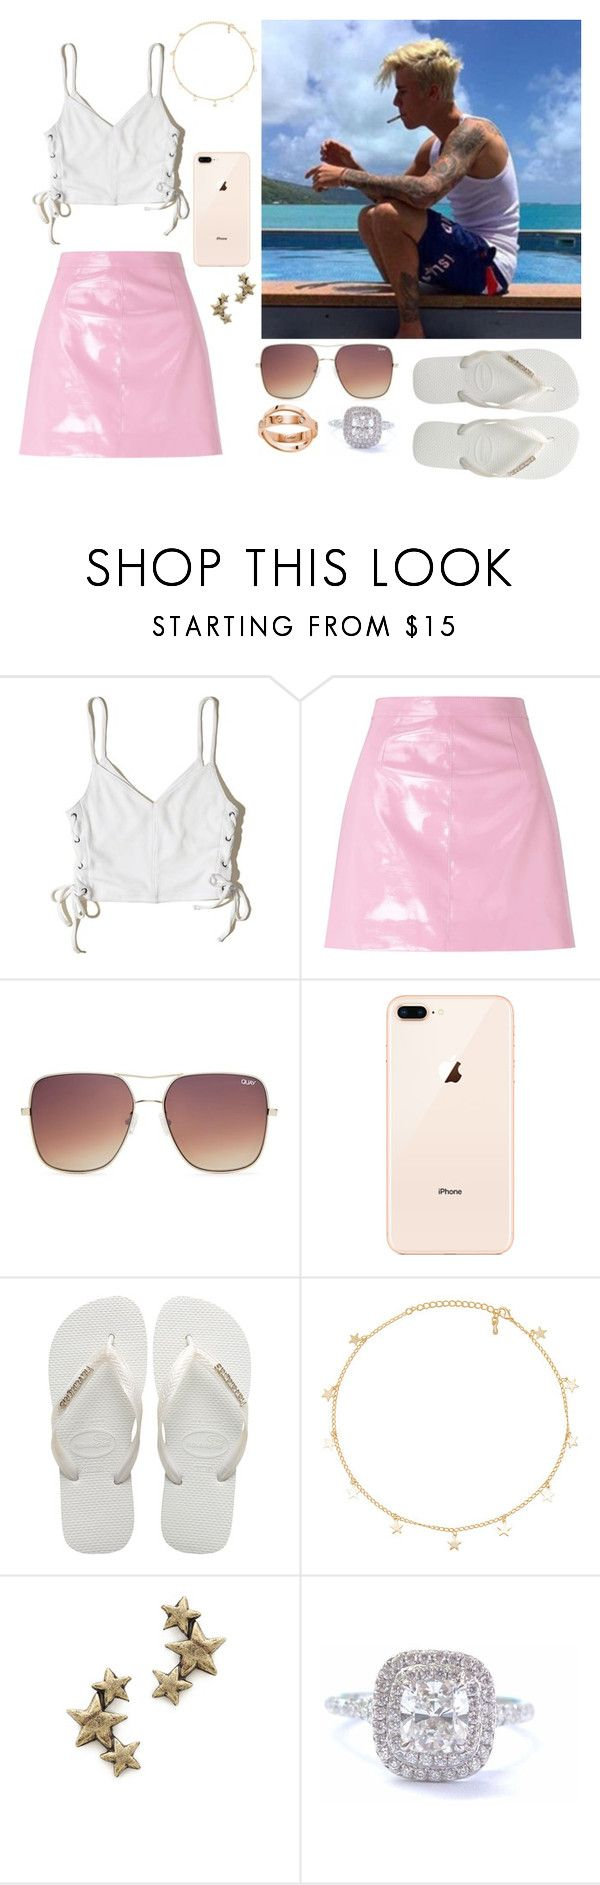 """Sem título #439"" by isabelalalbarelli on Polyvore featuring Hollister Co., Miss Selfridge, Justin Bieber, Topshop, Havaianas, 8 Other Reasons, Avant Garde Paris e Tiffany & Co."